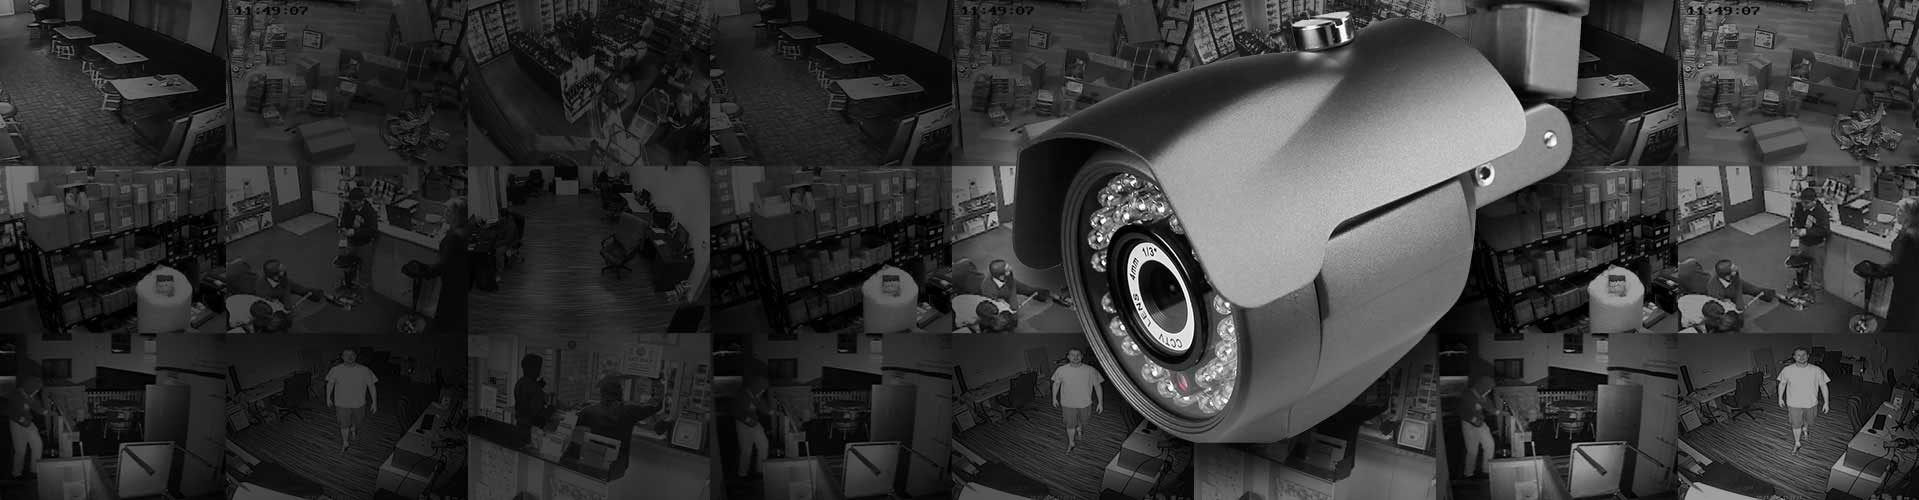 Business Security Systems Customised to Your Premises